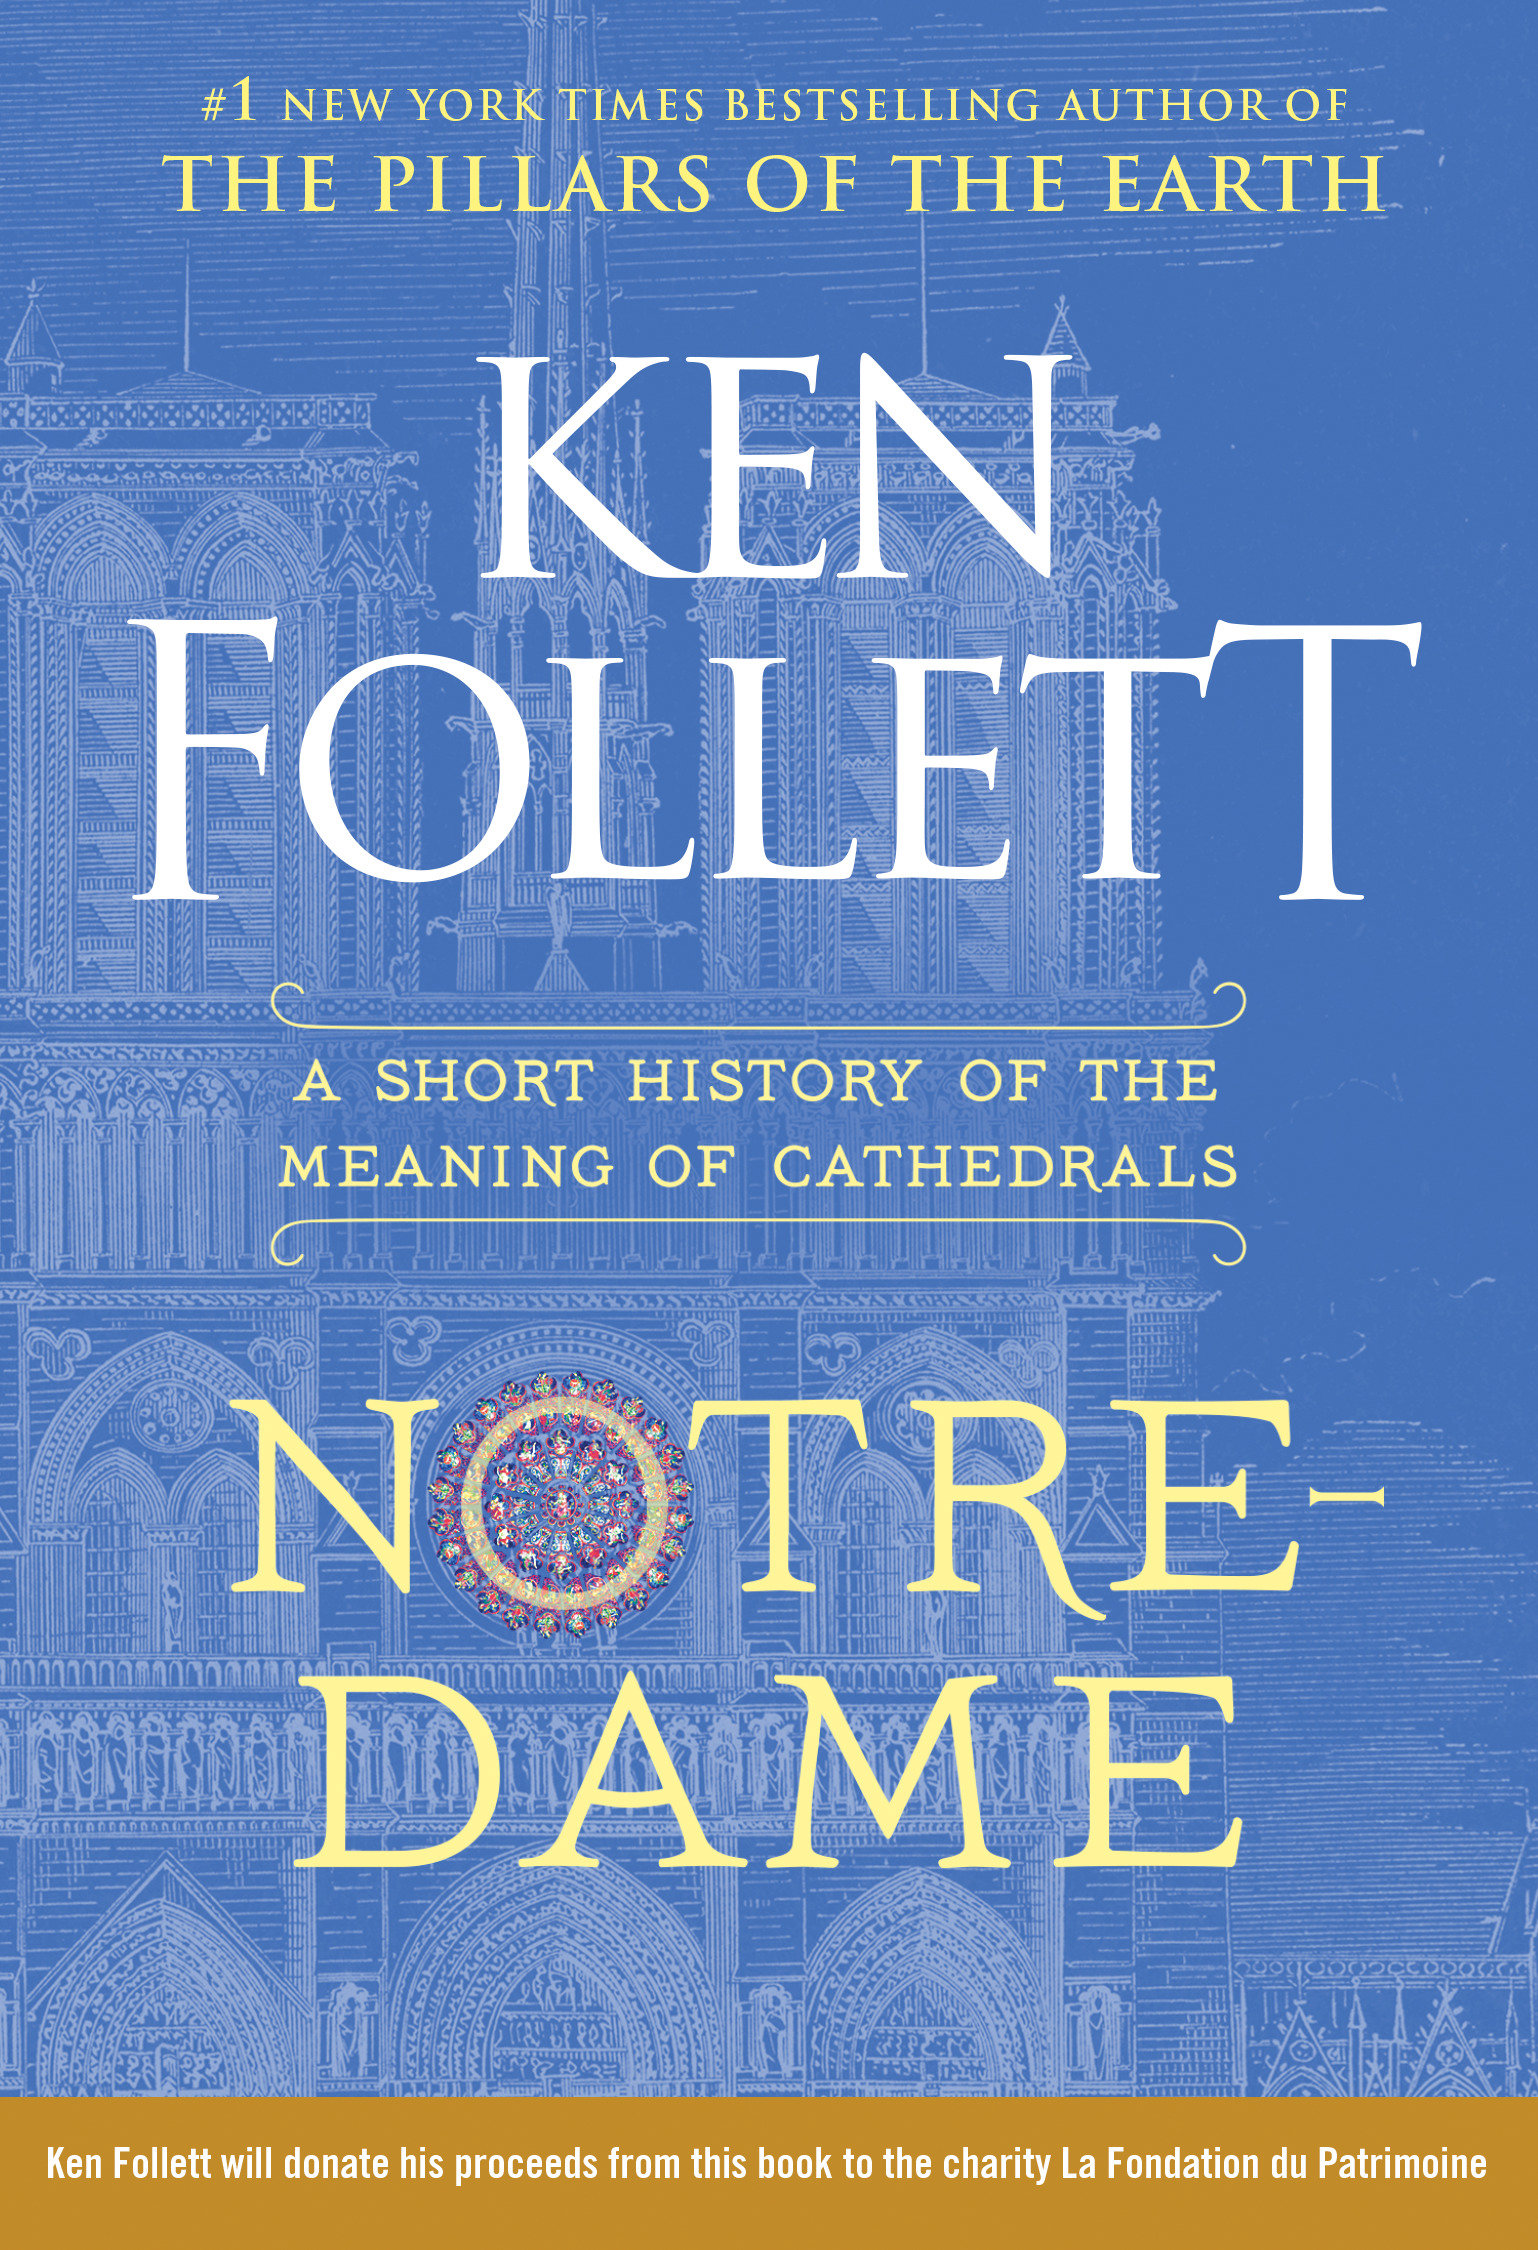 Notre-Dame a short history of the meaning of cathedrals cover image